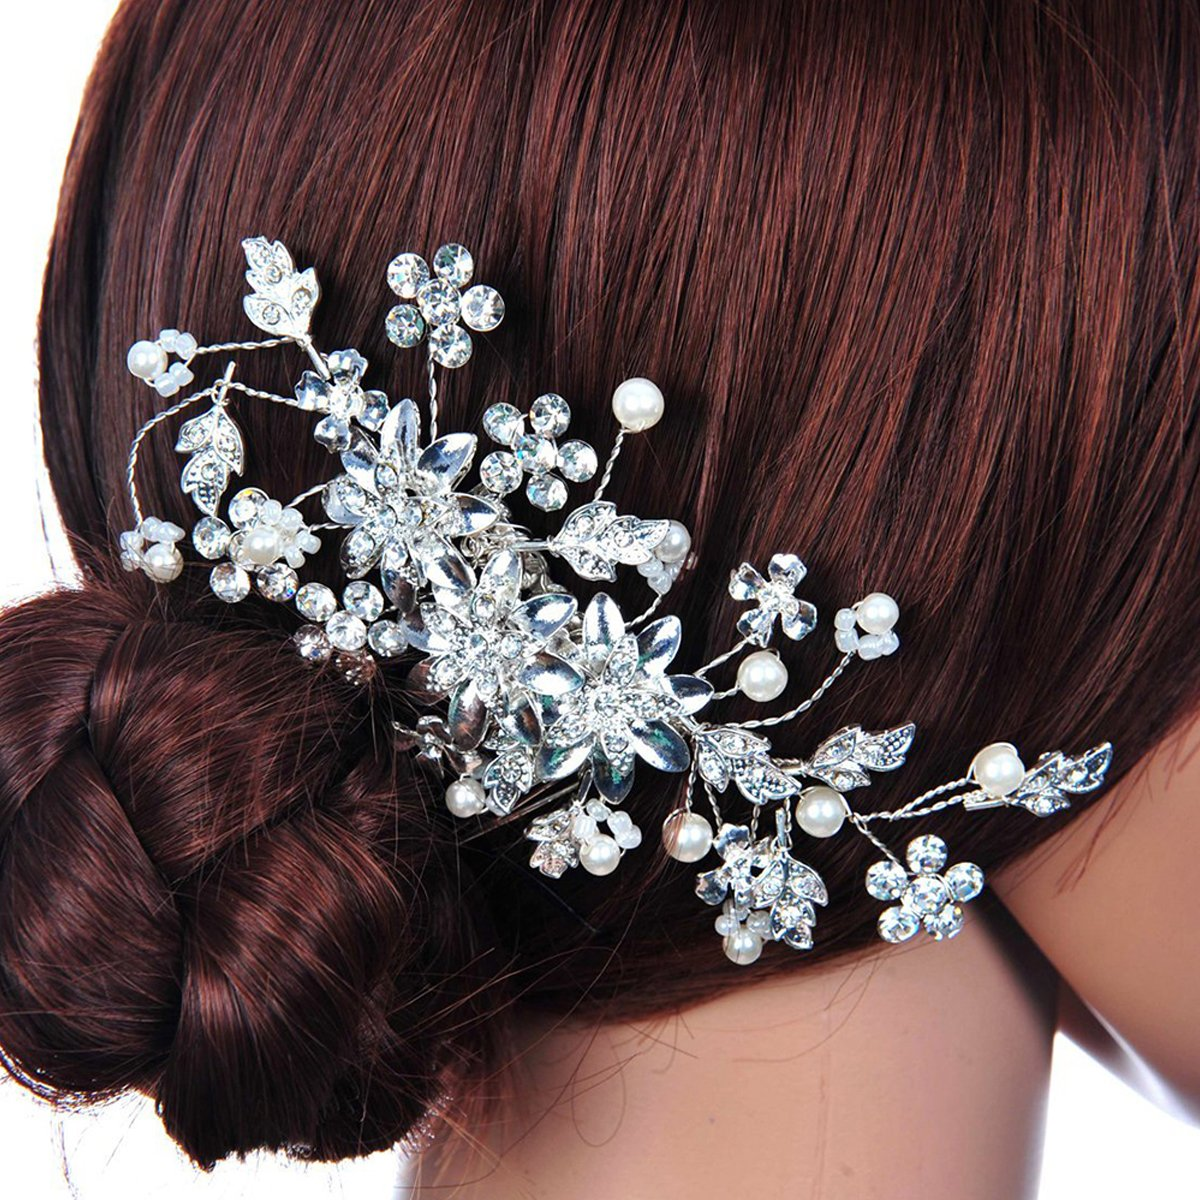 Pixnor Hair Pin Bridal Hair Comb for Wedding Crystal Rhinestones Pearls Decor(Silver)